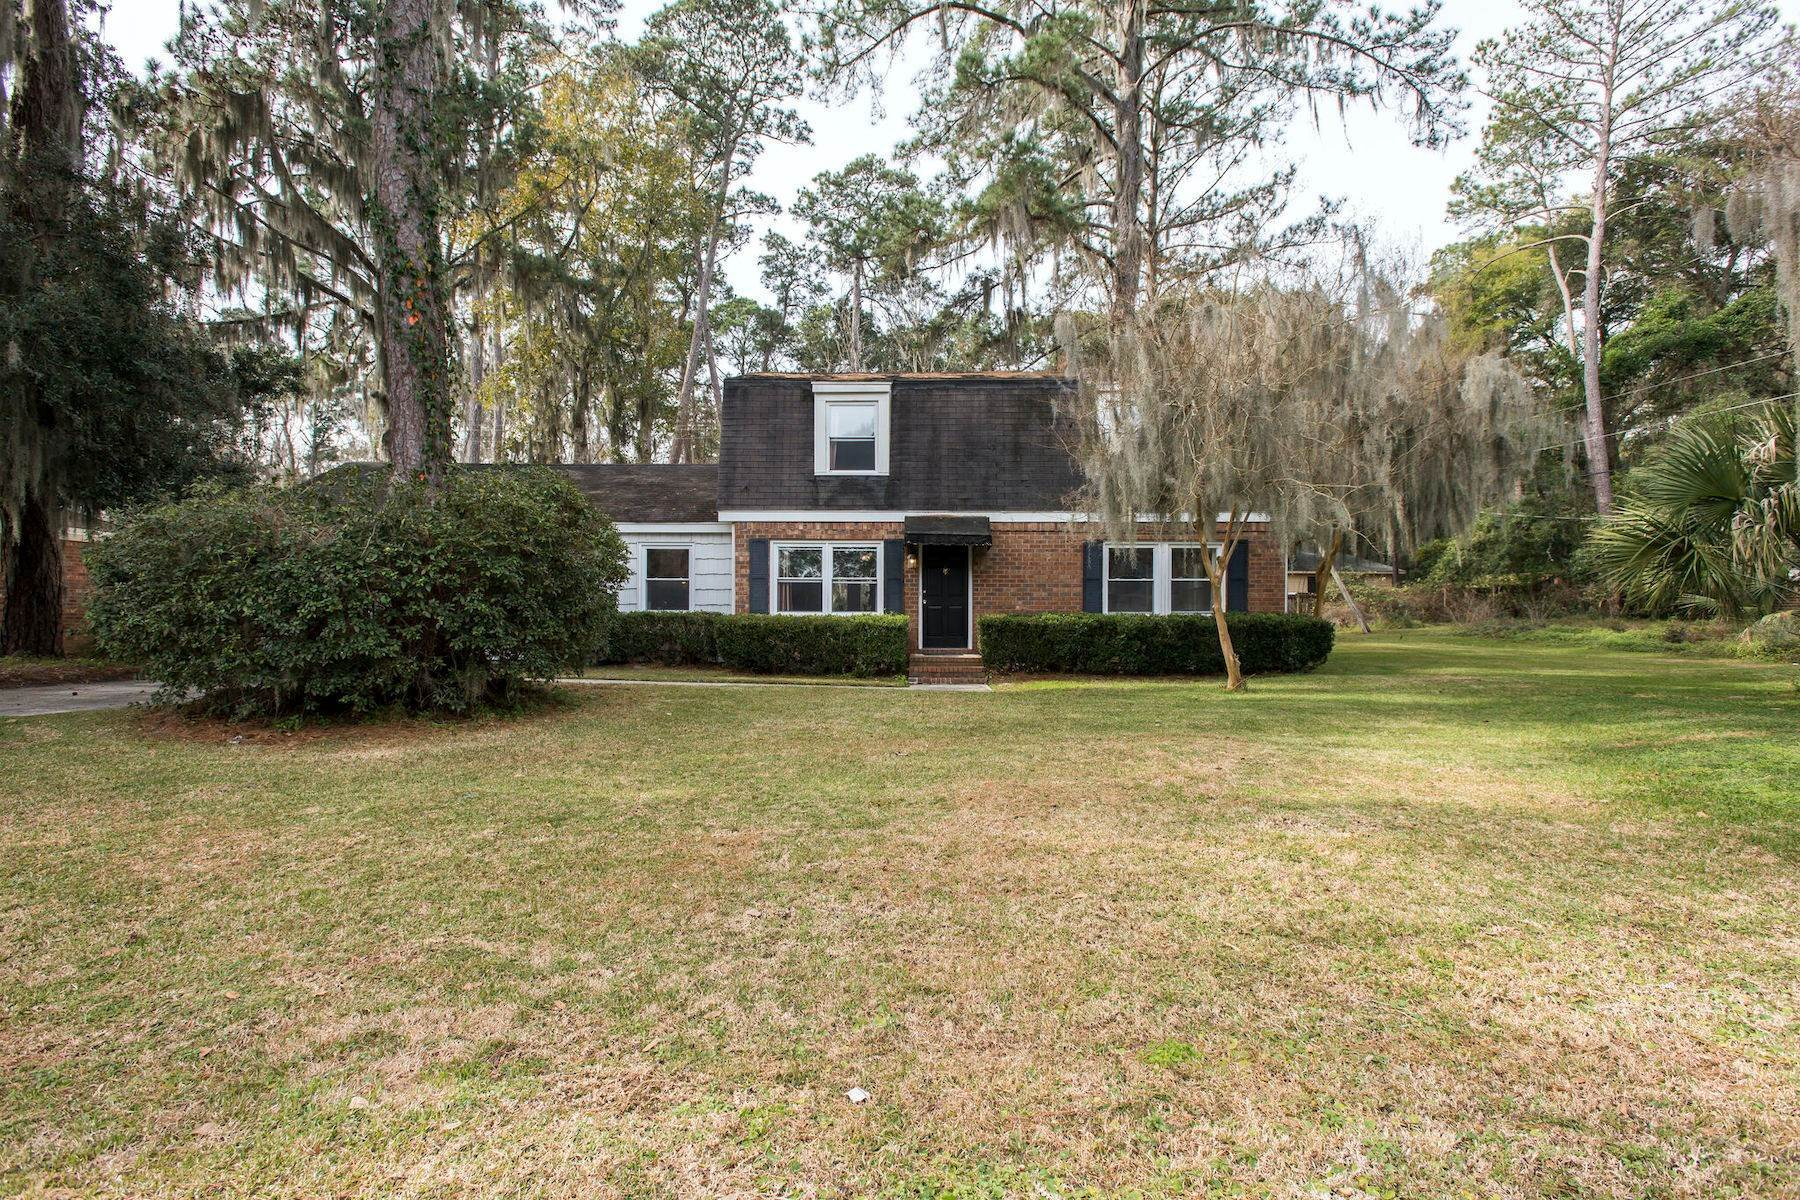 Single Family Homes for Sale at Charming Cape Cod Style on Large Serene Lot 407 Sandhill Rd Savannah, Georgia 31410 United States